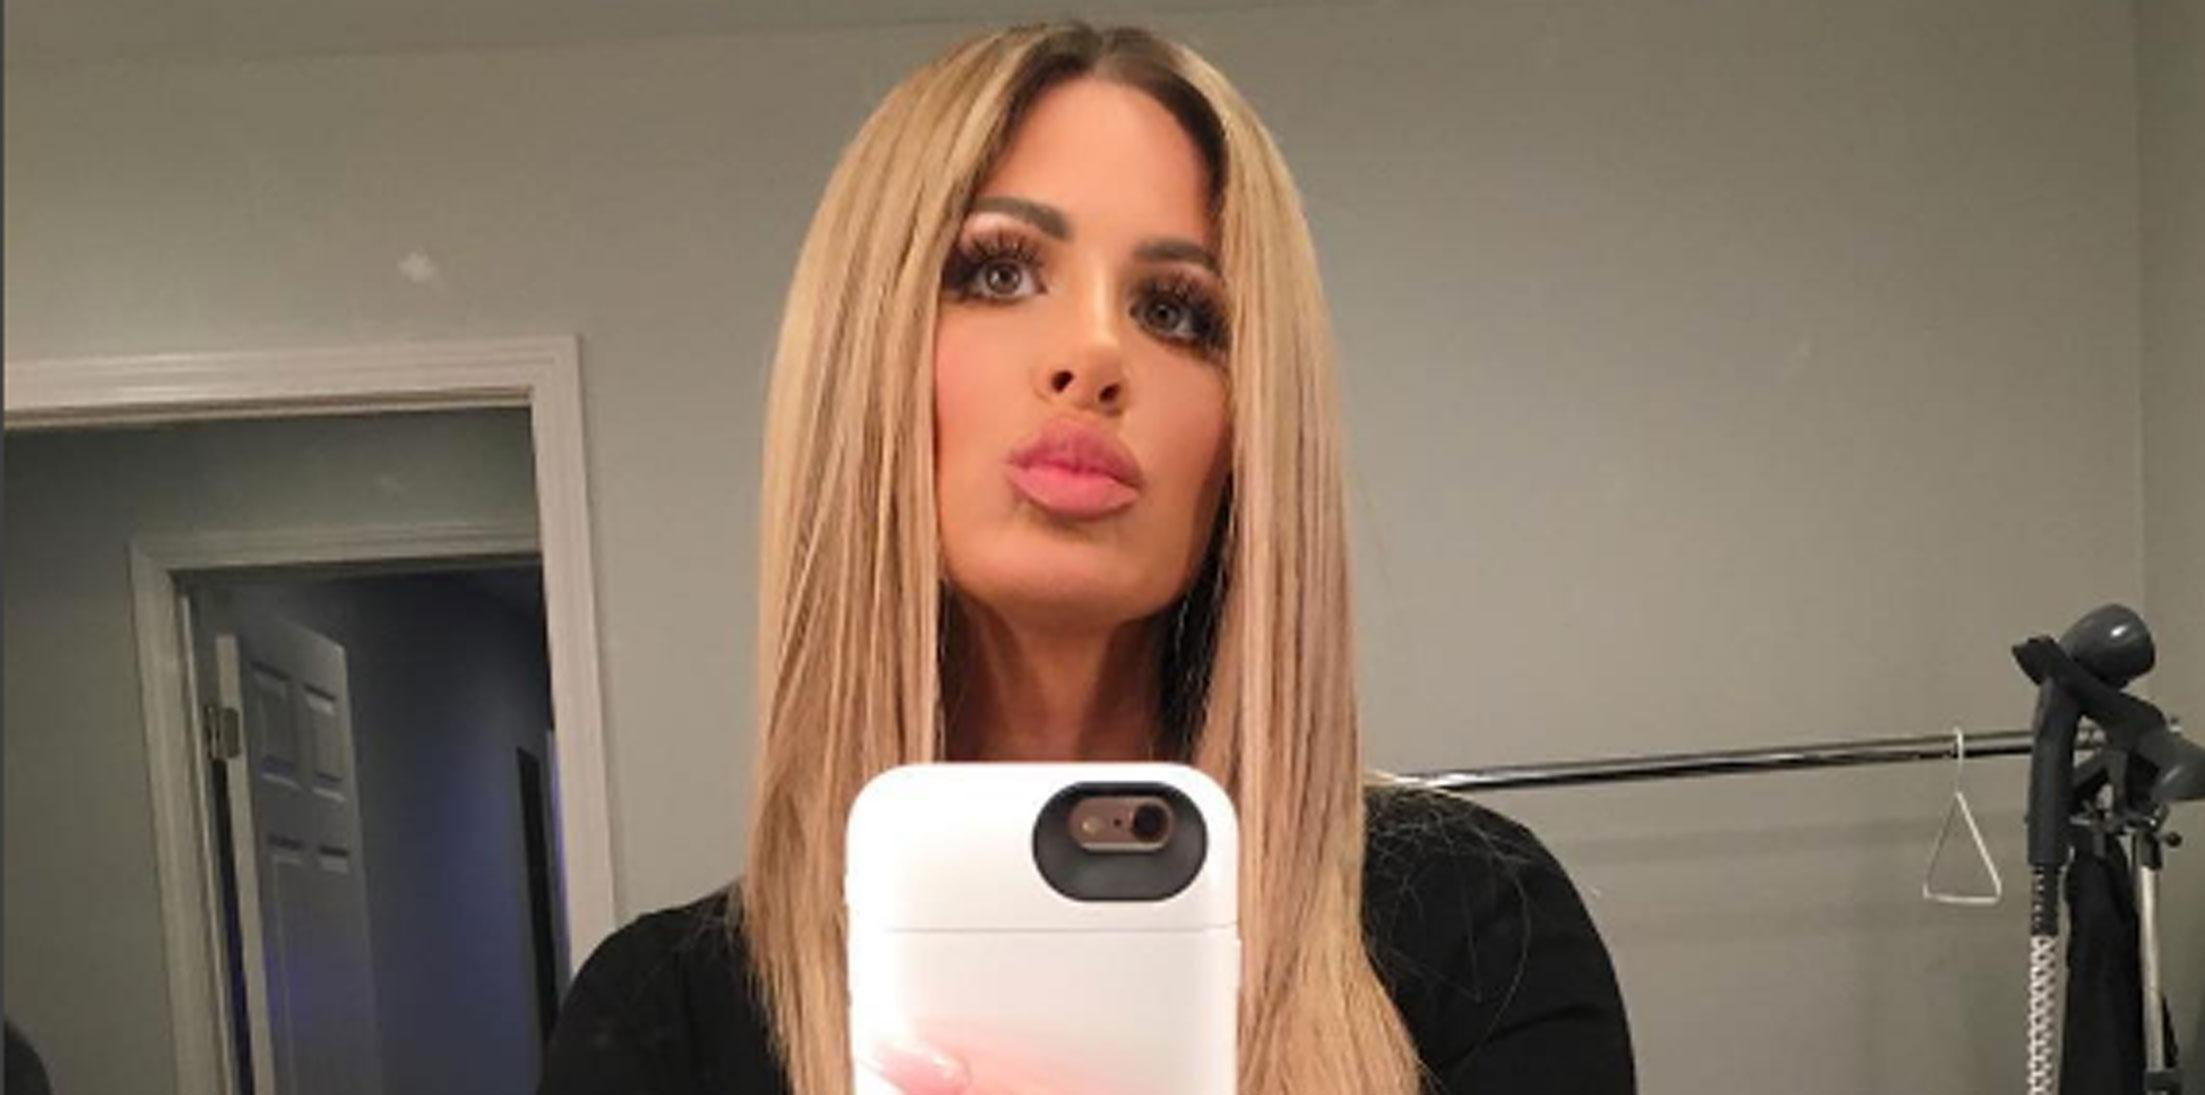 Kim Zolciak Biermann Topless Photo Long